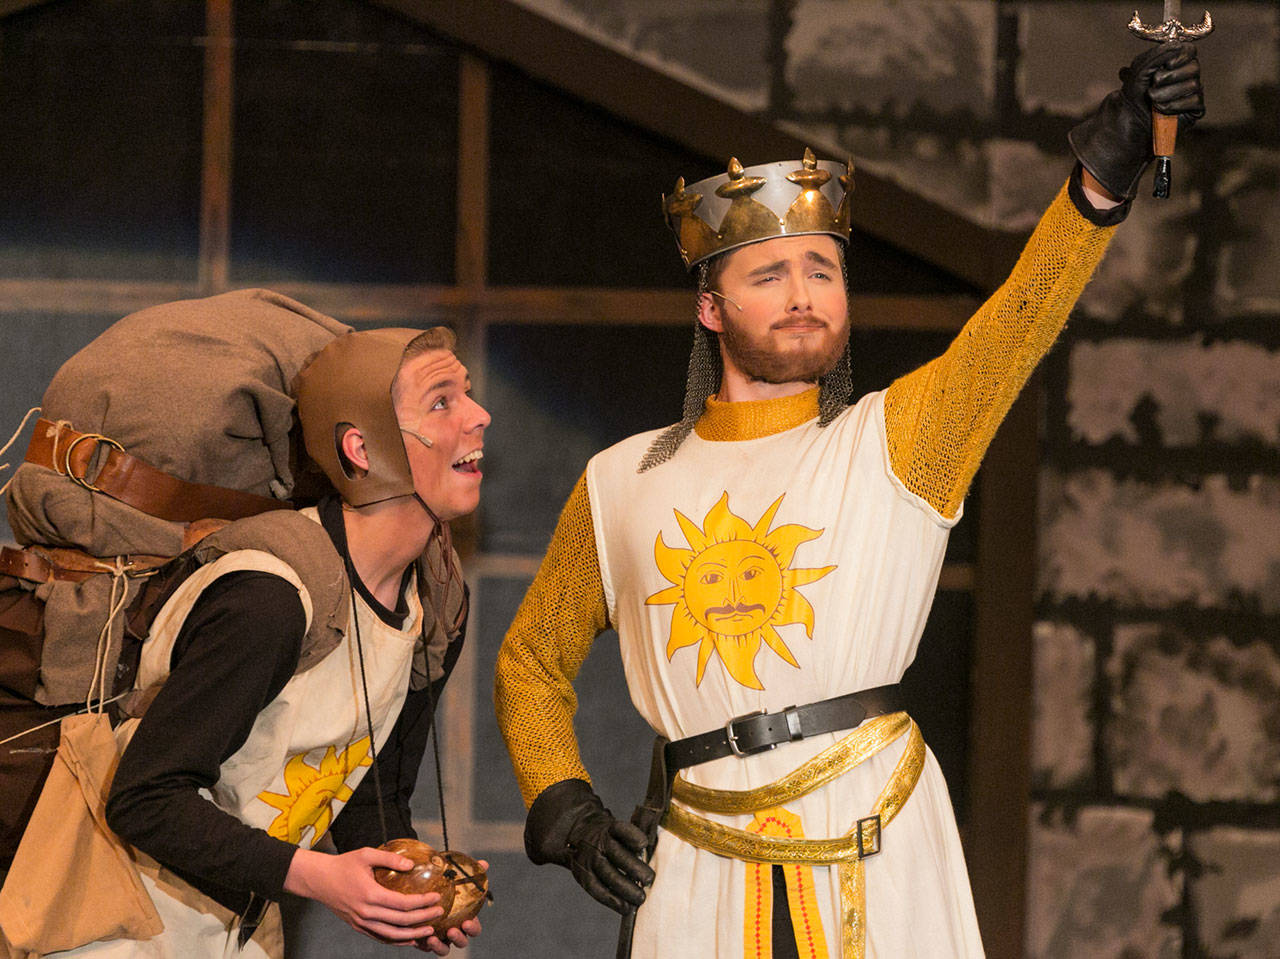 """Gavin McKeever (left) as Patsy looks on a Aidan Norris as King Arthur raises Excalibur during Kamiak High School's production of """"Spamalot."""" (Kevin Clark / The Herald)"""